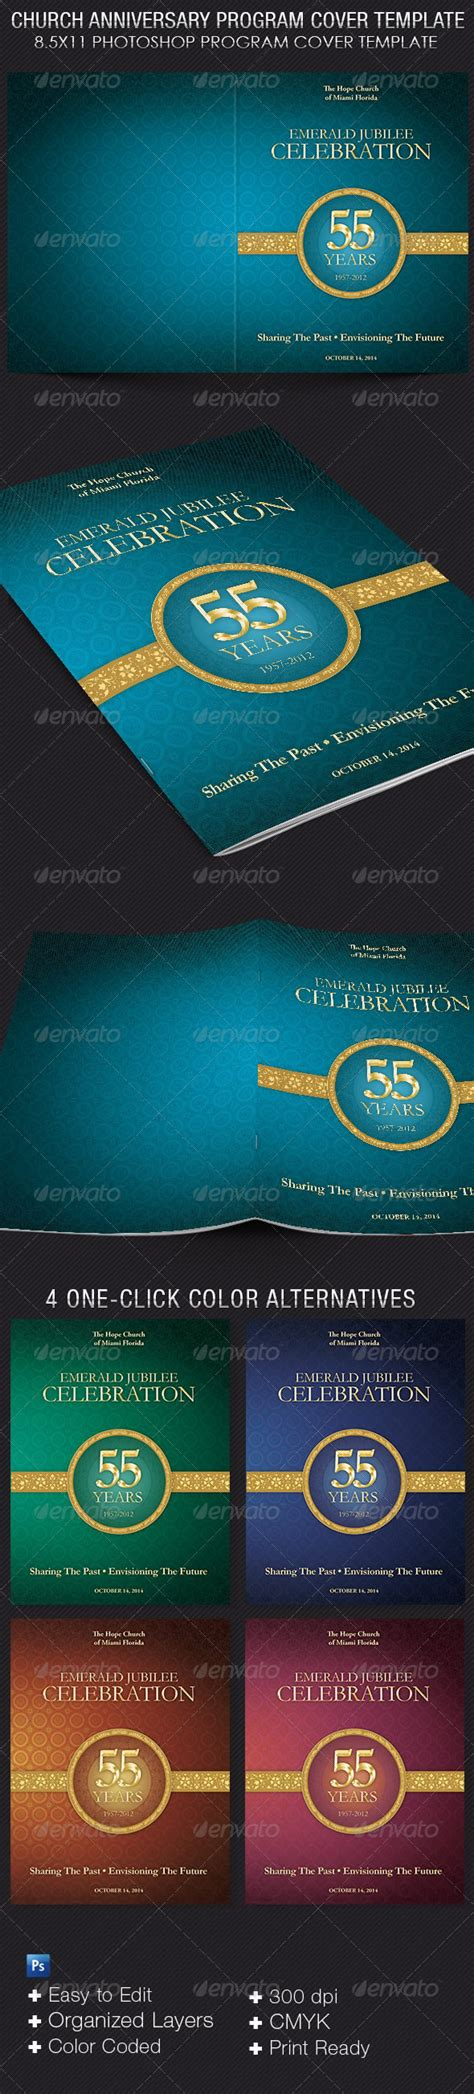 Church Anniversary Program Cover Template On Behance Church Program Covers Templates